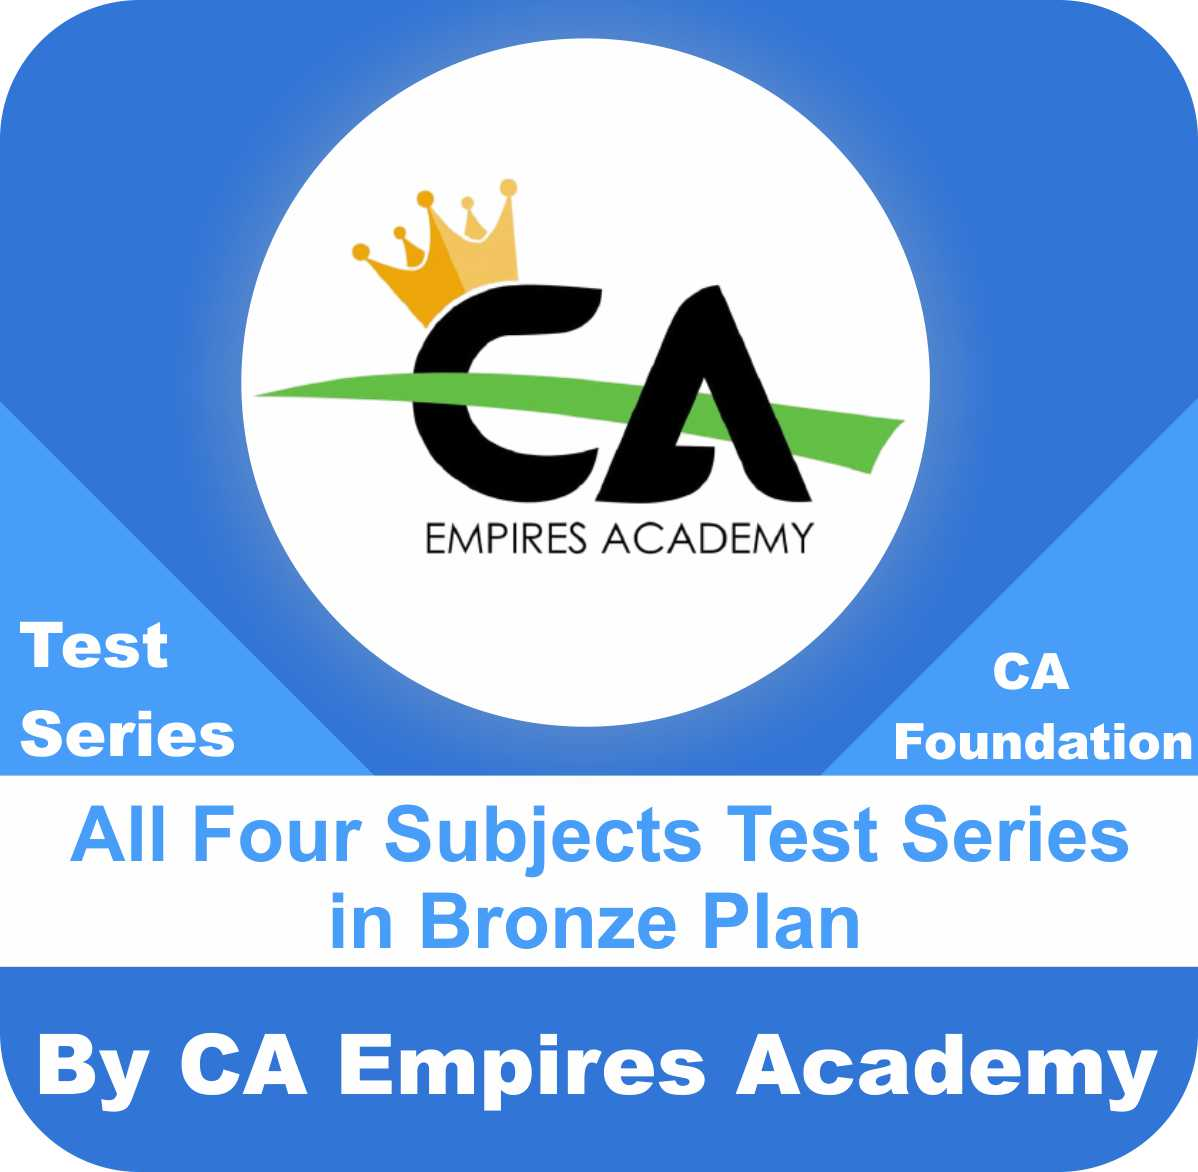 All Four Subjects Test Series in Bronze Plan